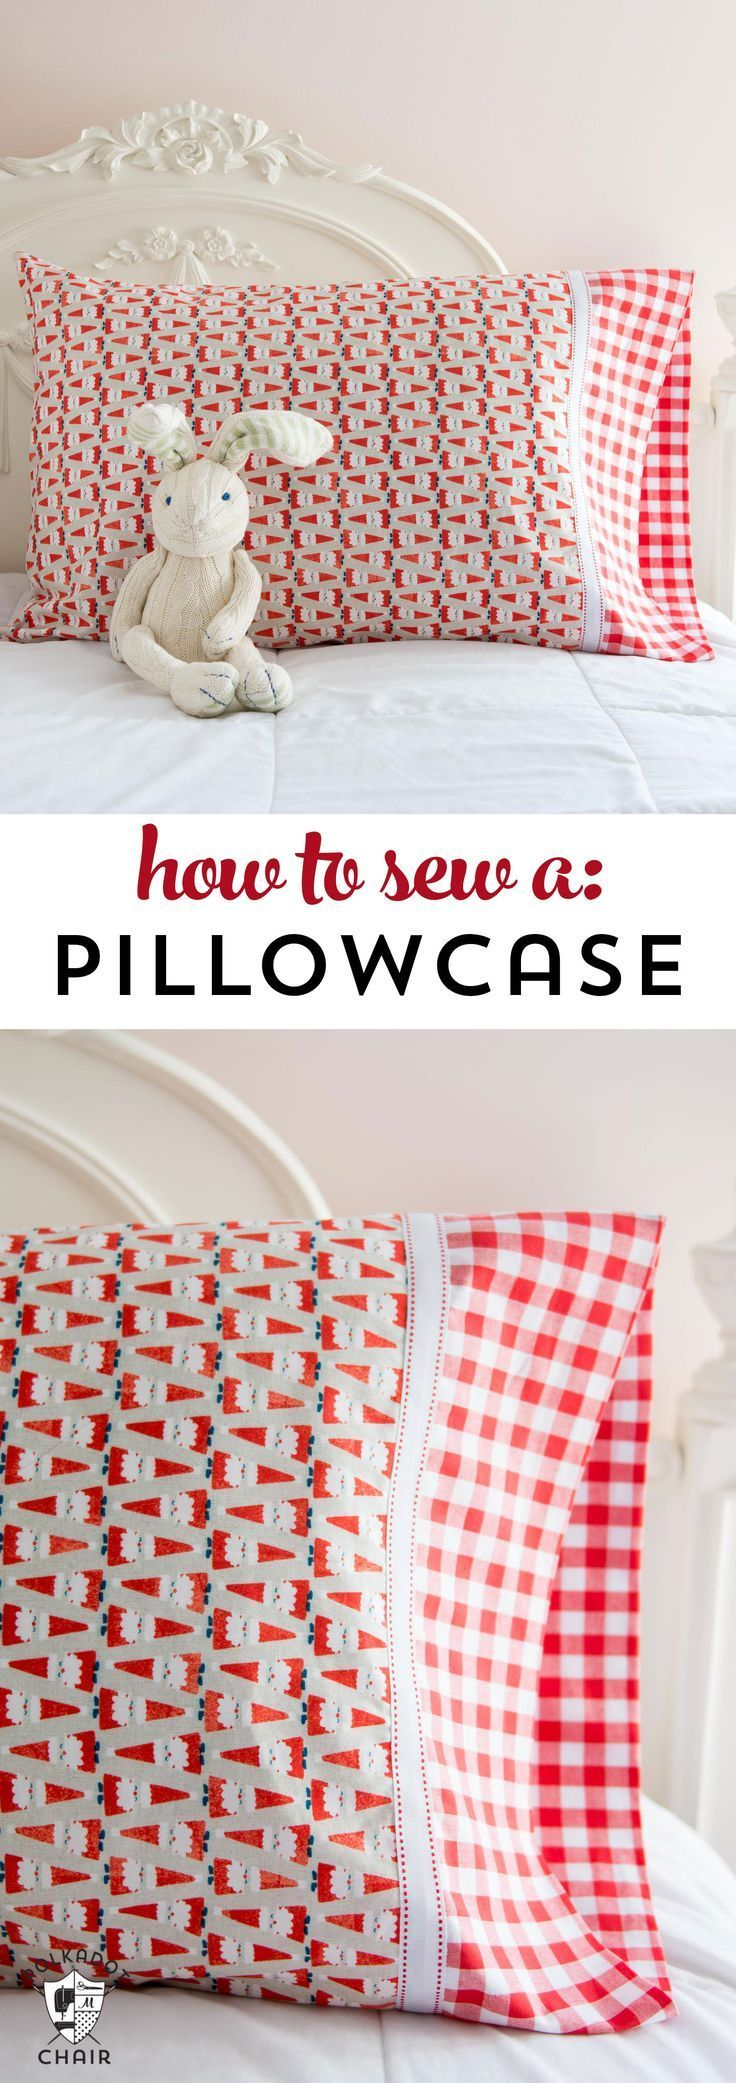 Cheap white pillowcases for crafts - A Quick And Easy Way To Sew A Pillowcase